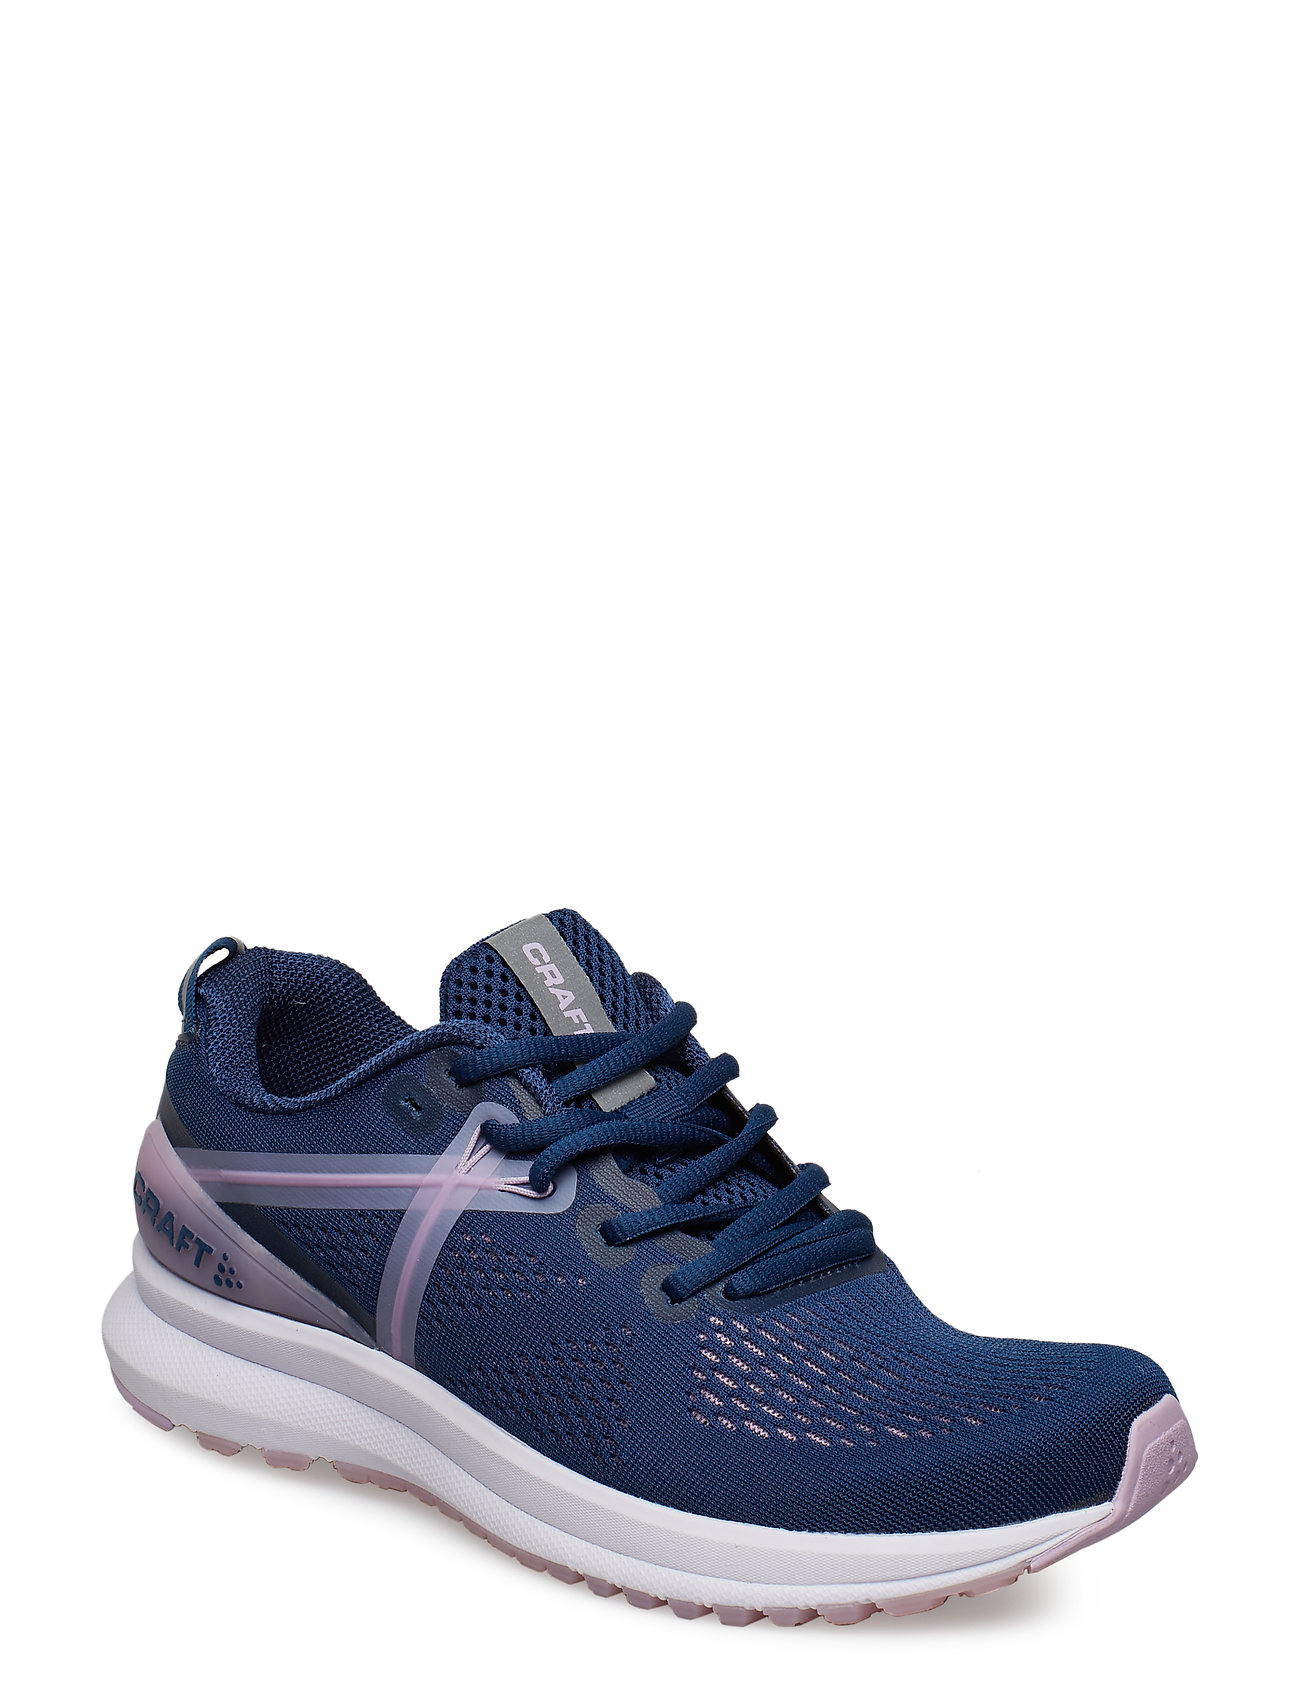 Image of Shoe X165 Engineered W Shoes Sport Shoes Running Shoes Blå Craft (3452123751)